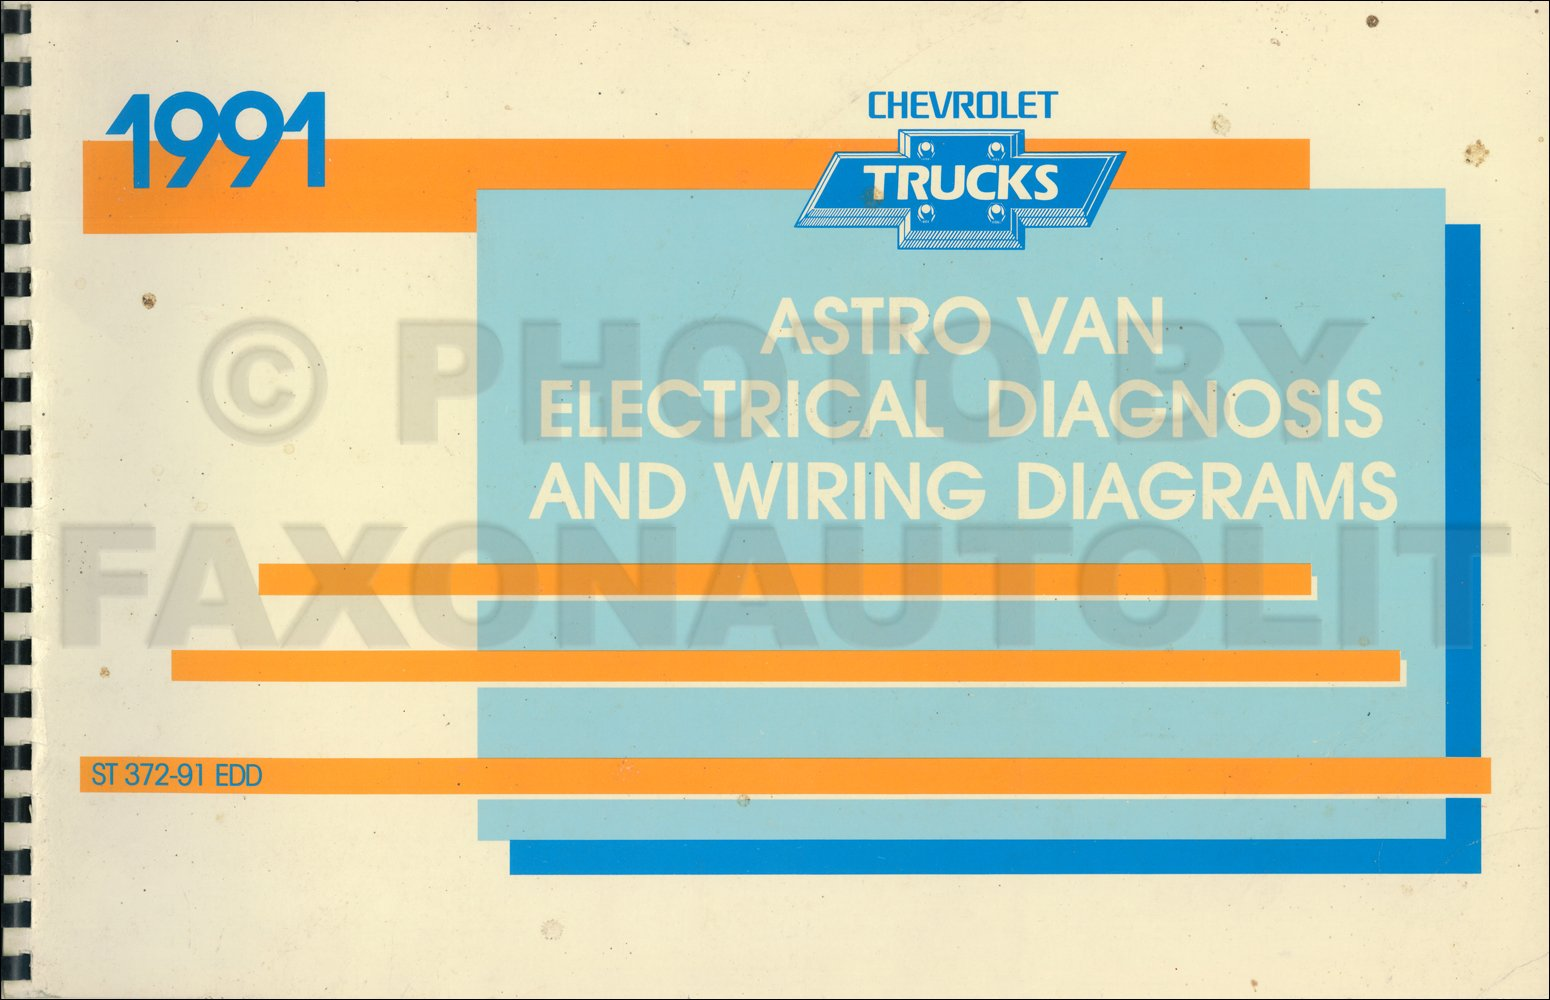 Astro Van Wiring Diagram from images-na.ssl-images-amazon.com